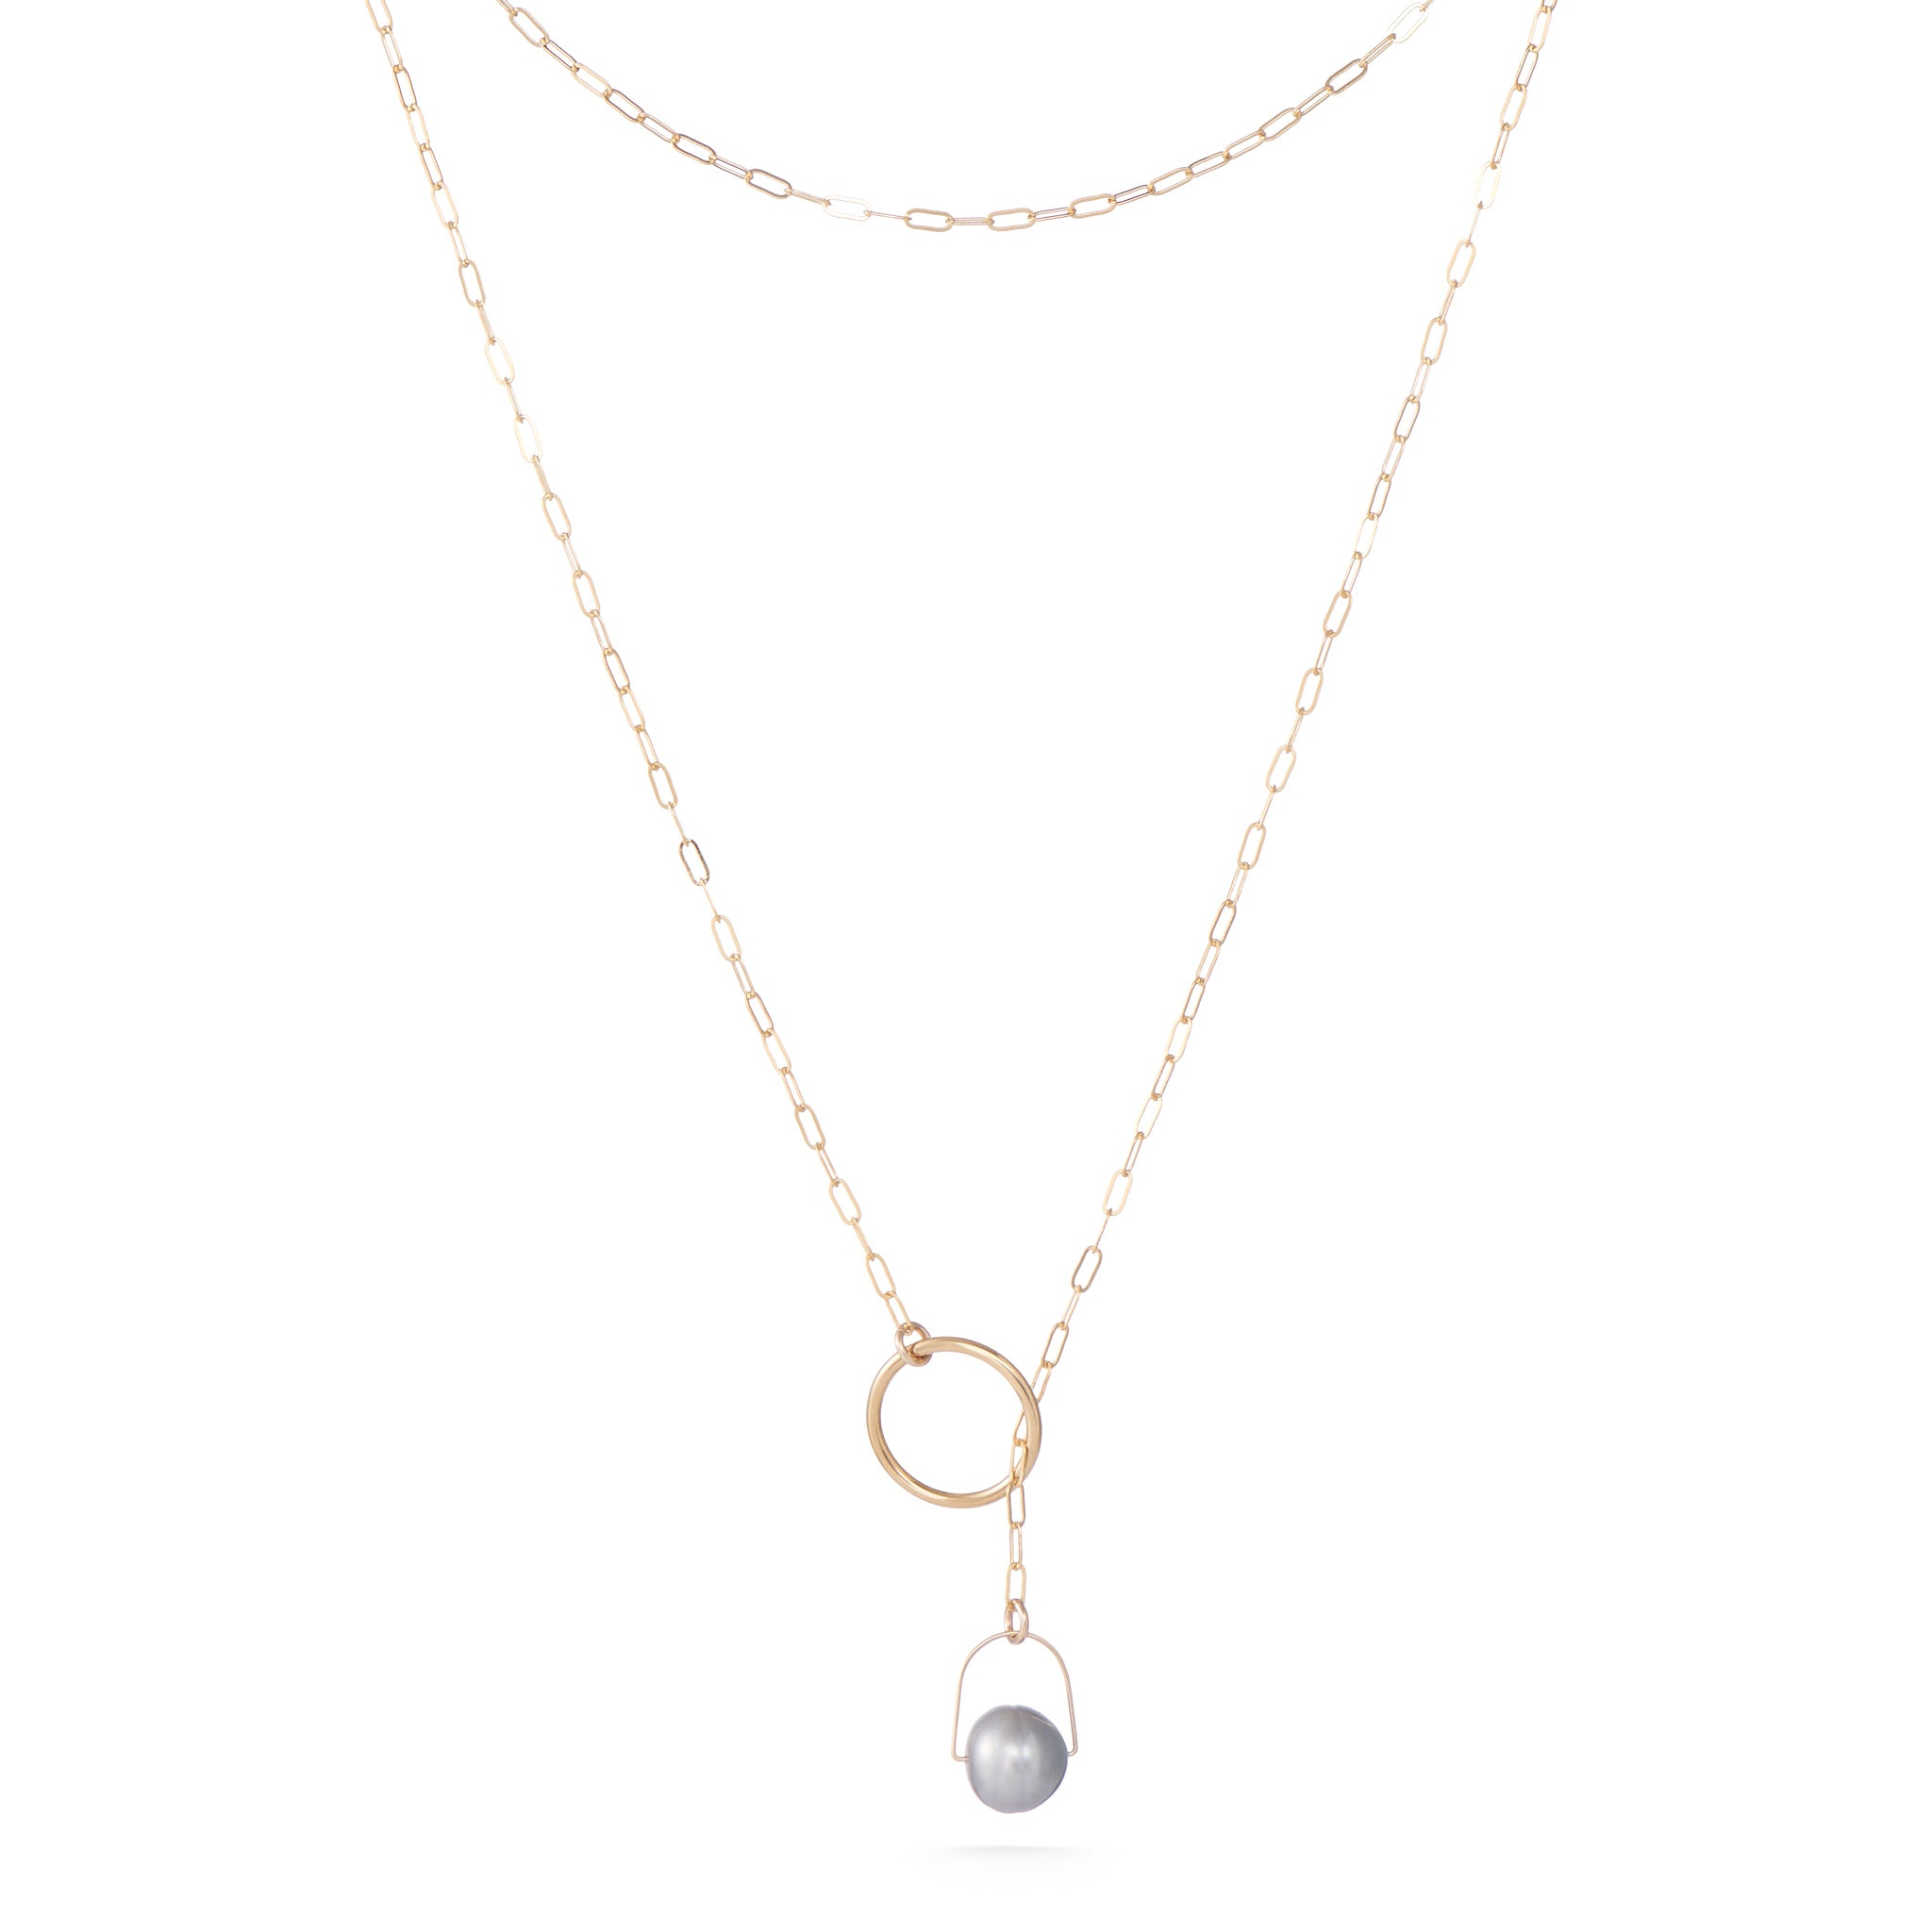 Lumen Necklace - Grey